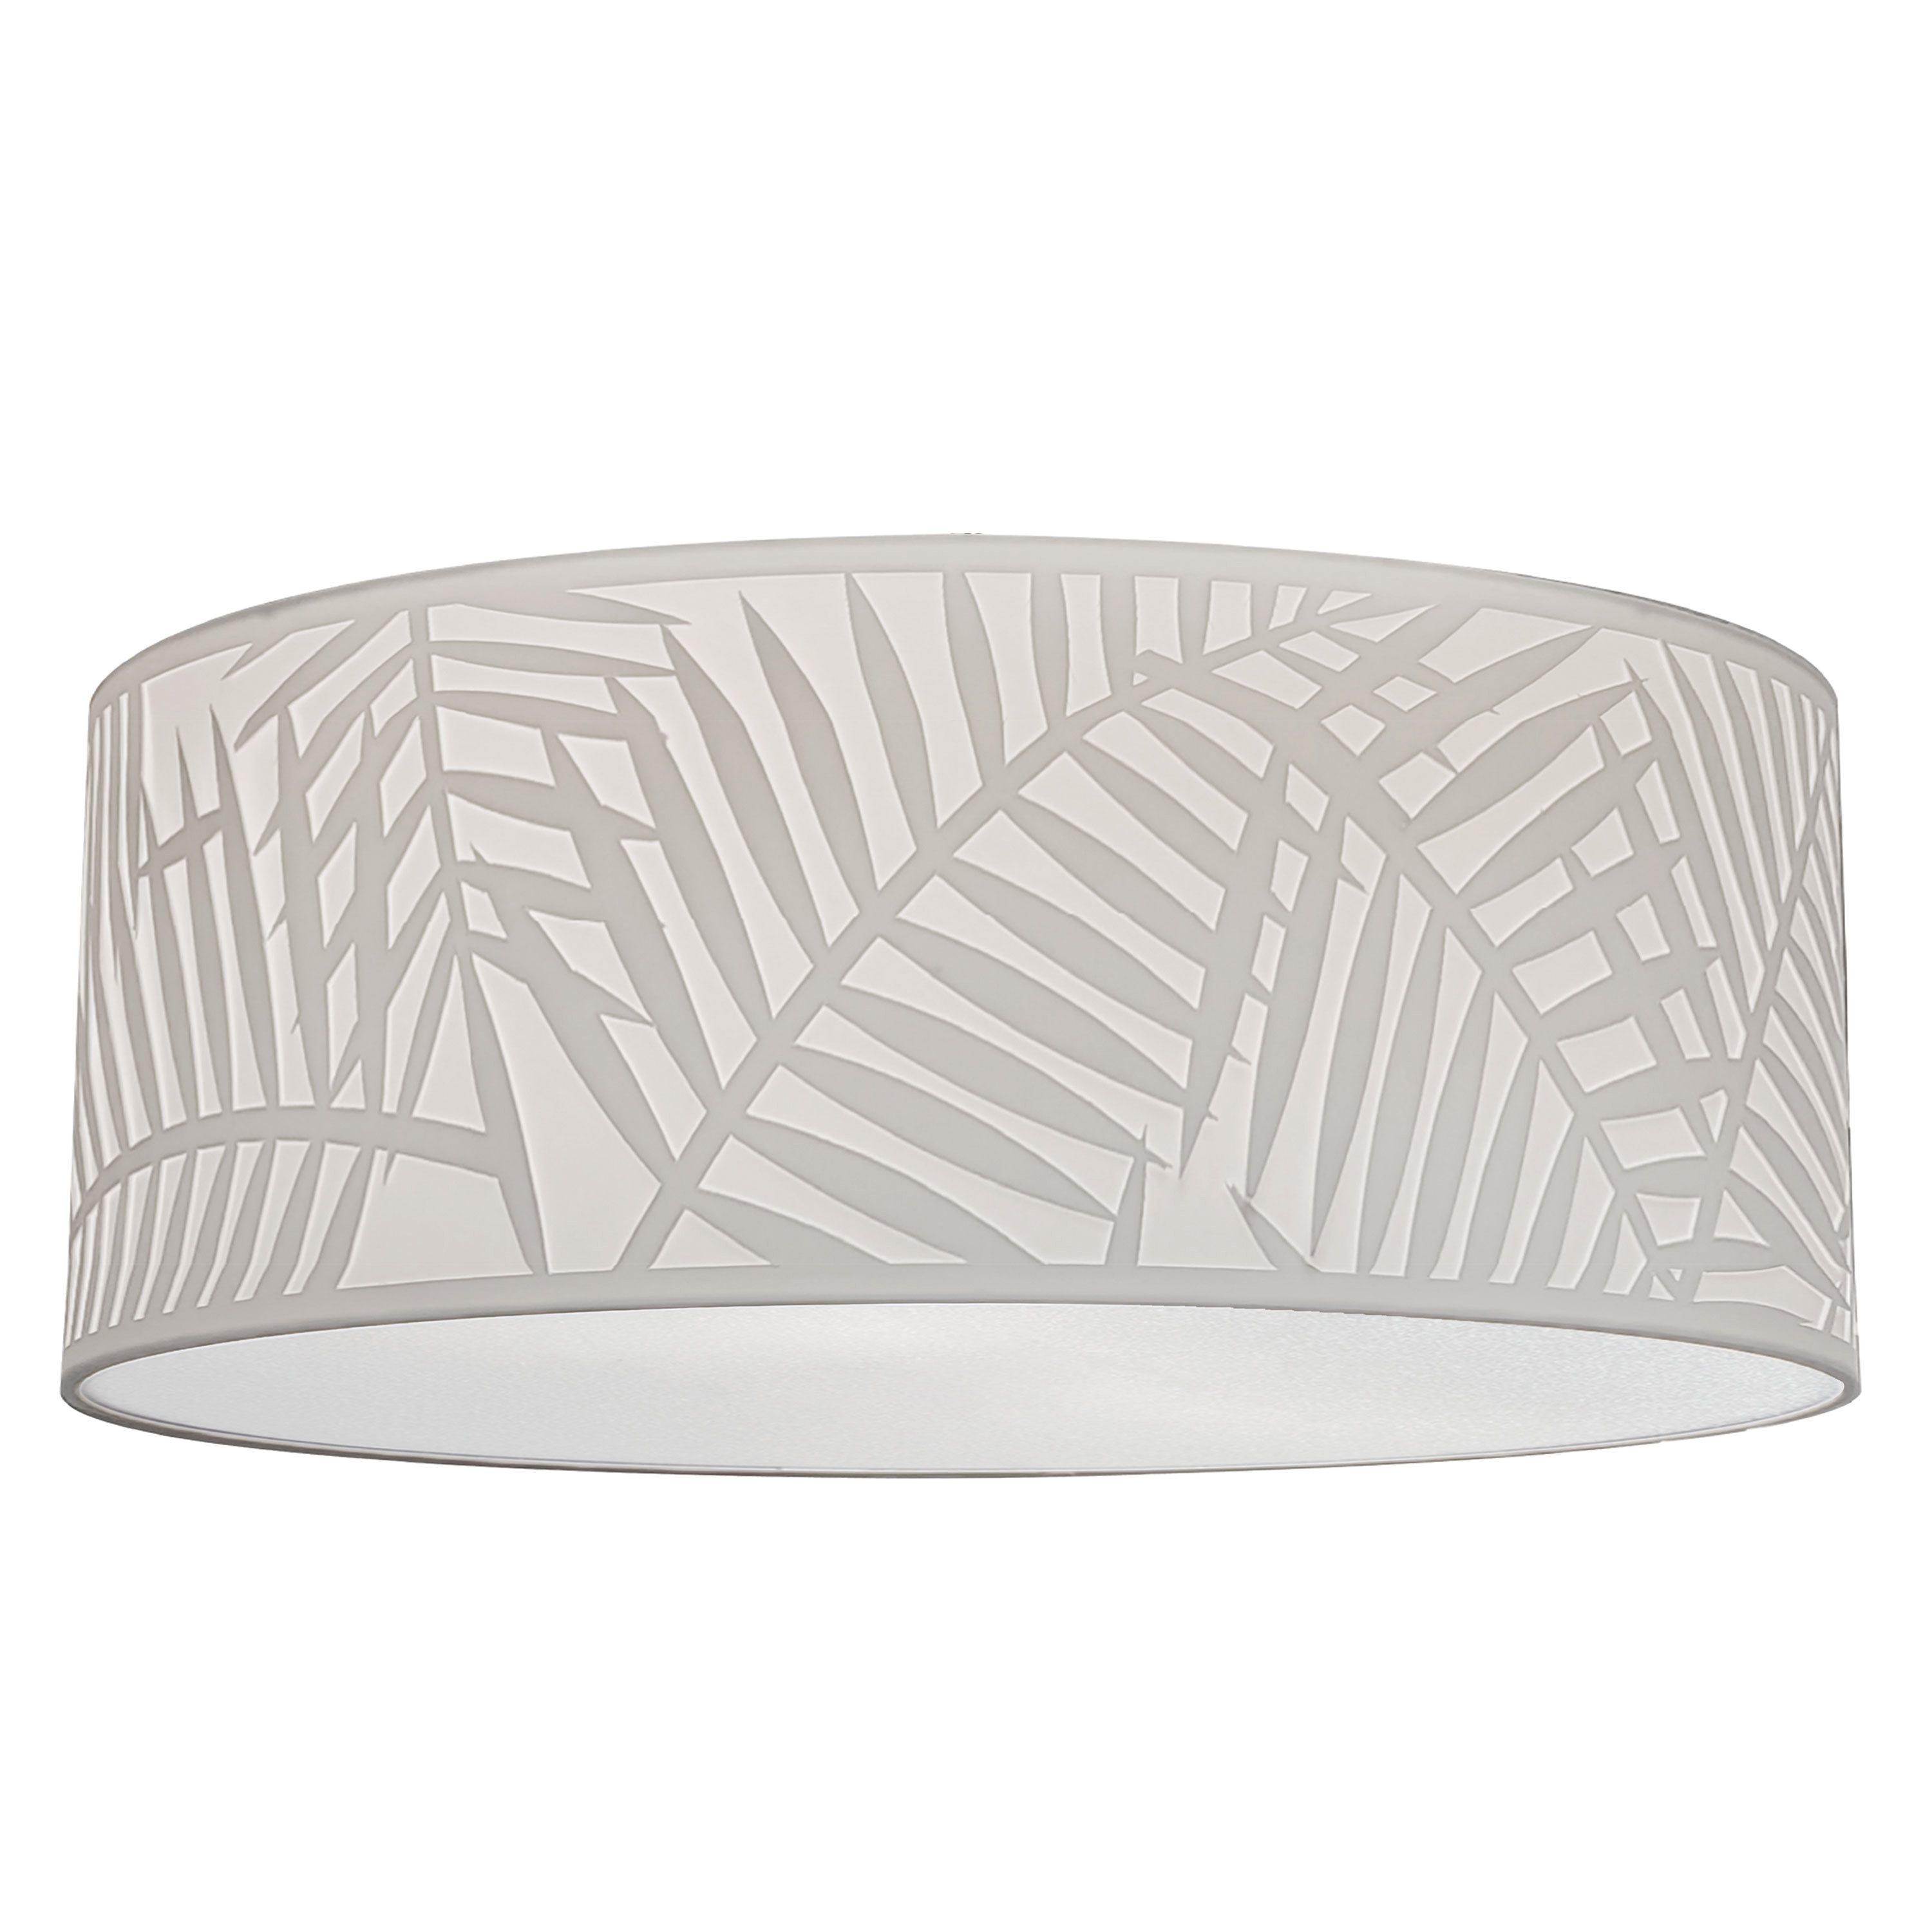 4 Light Polished Chrome Flush Mount w/ White Shade and White Fabric Diffuser